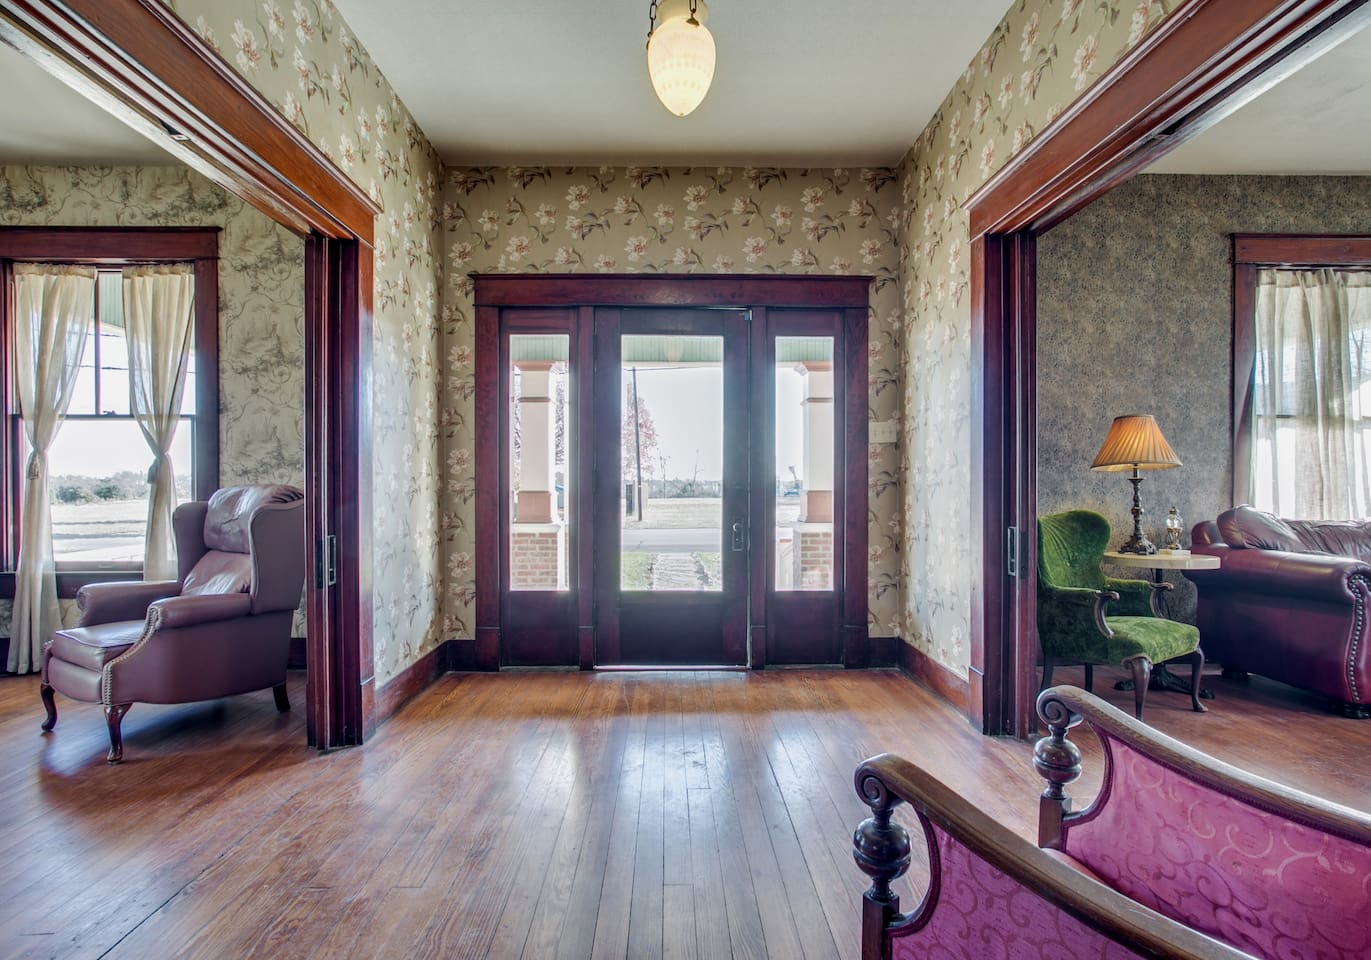 Waltz into the foyer and choose which pocket doors you want to mosey into first.